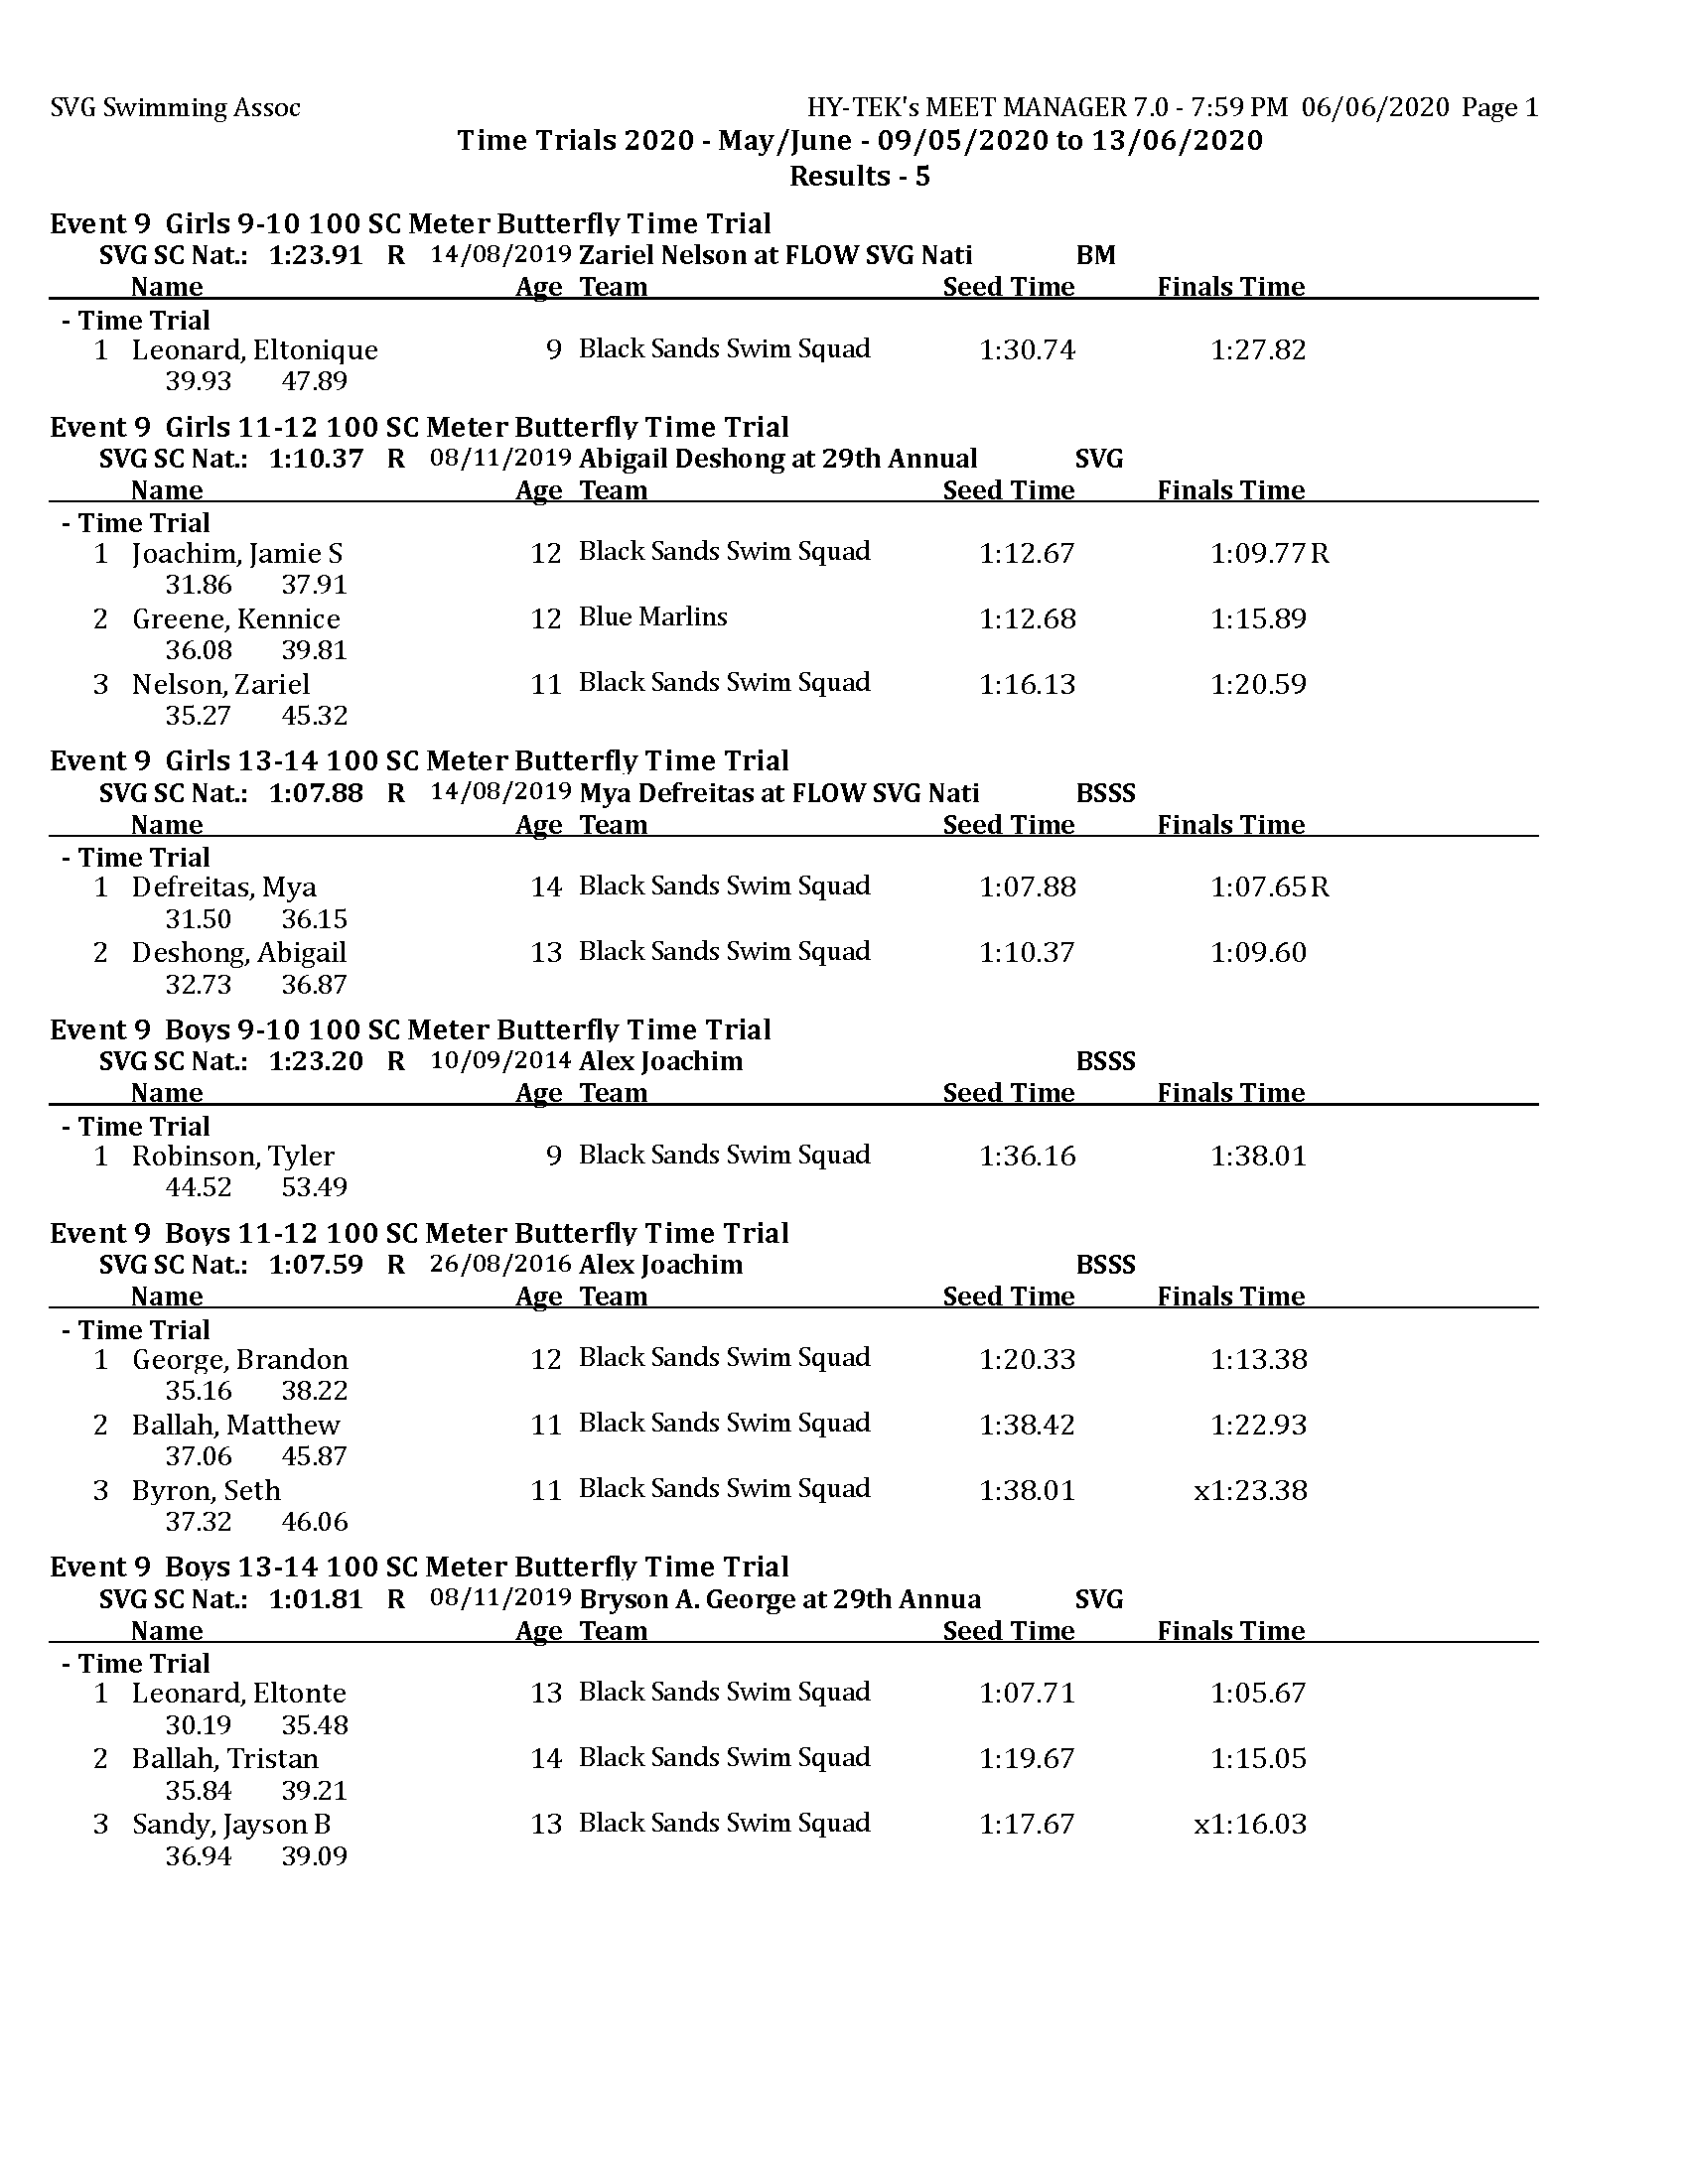 TT 2020 - May - Results day 5 MM_Page_1